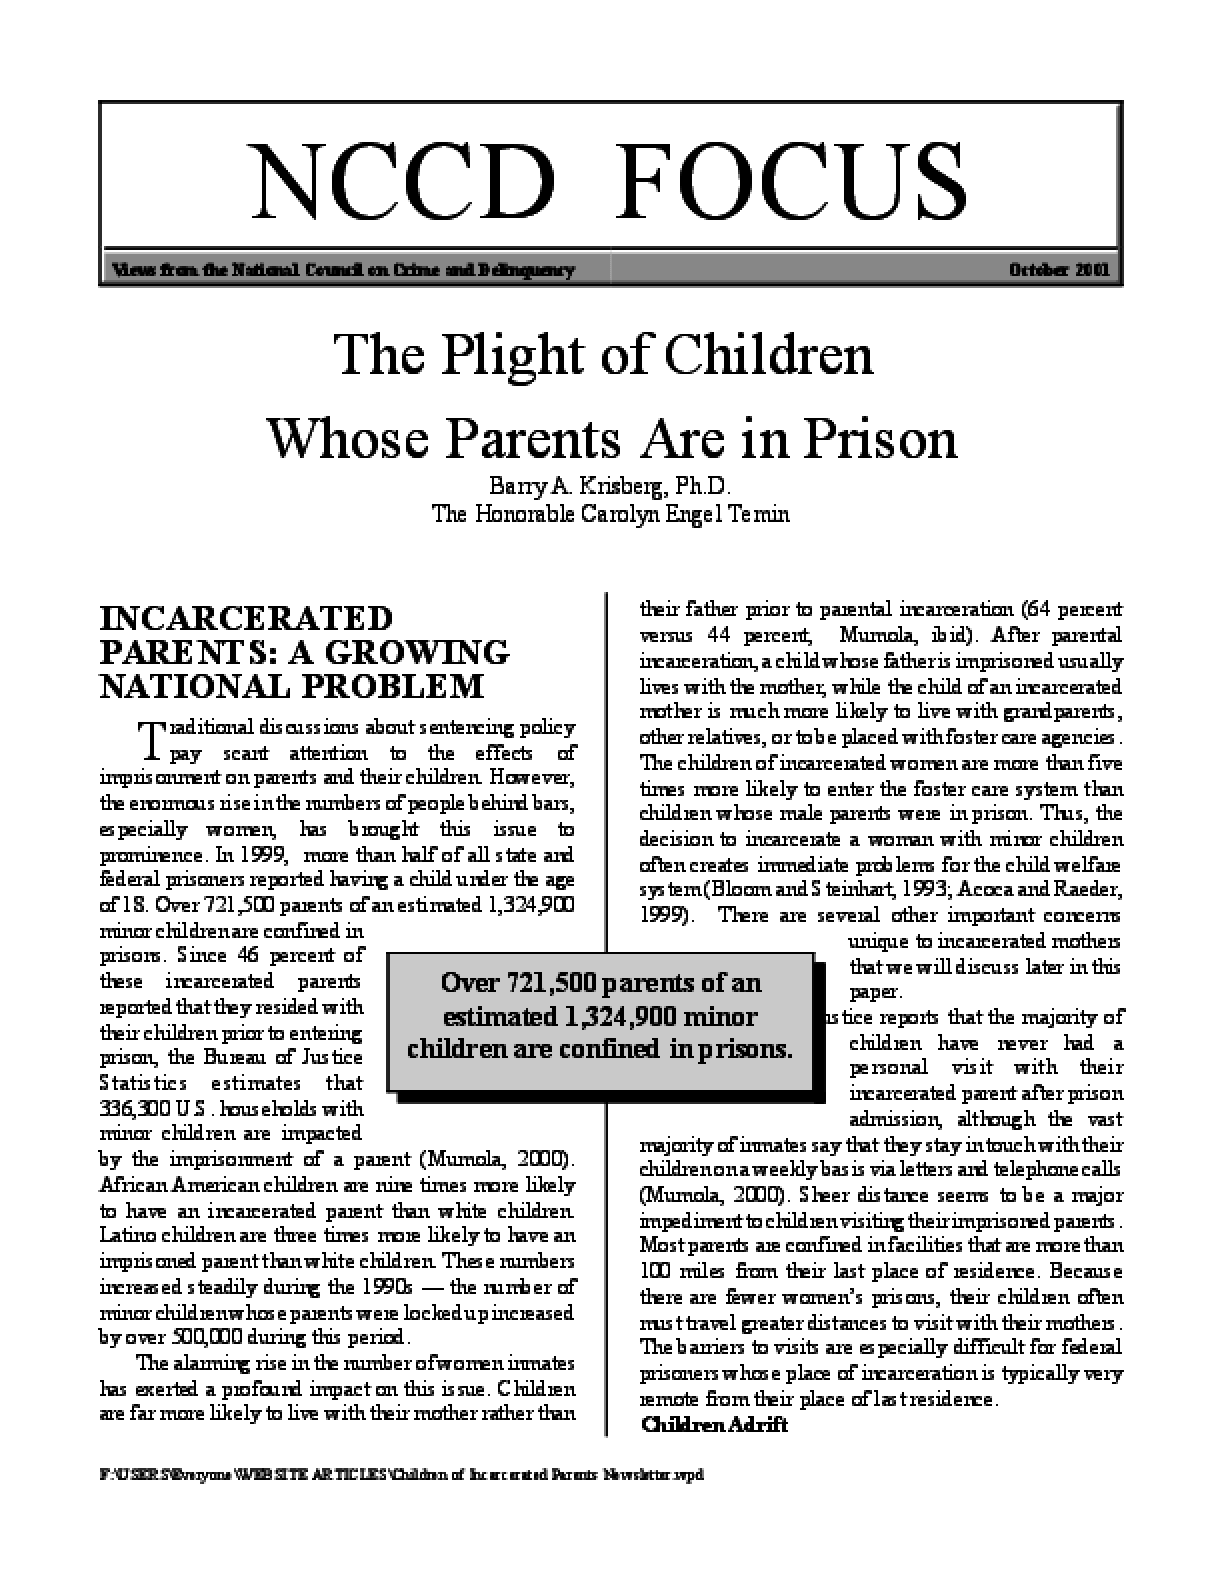 The Plight of Children whose Parents are in Prison (Focus)